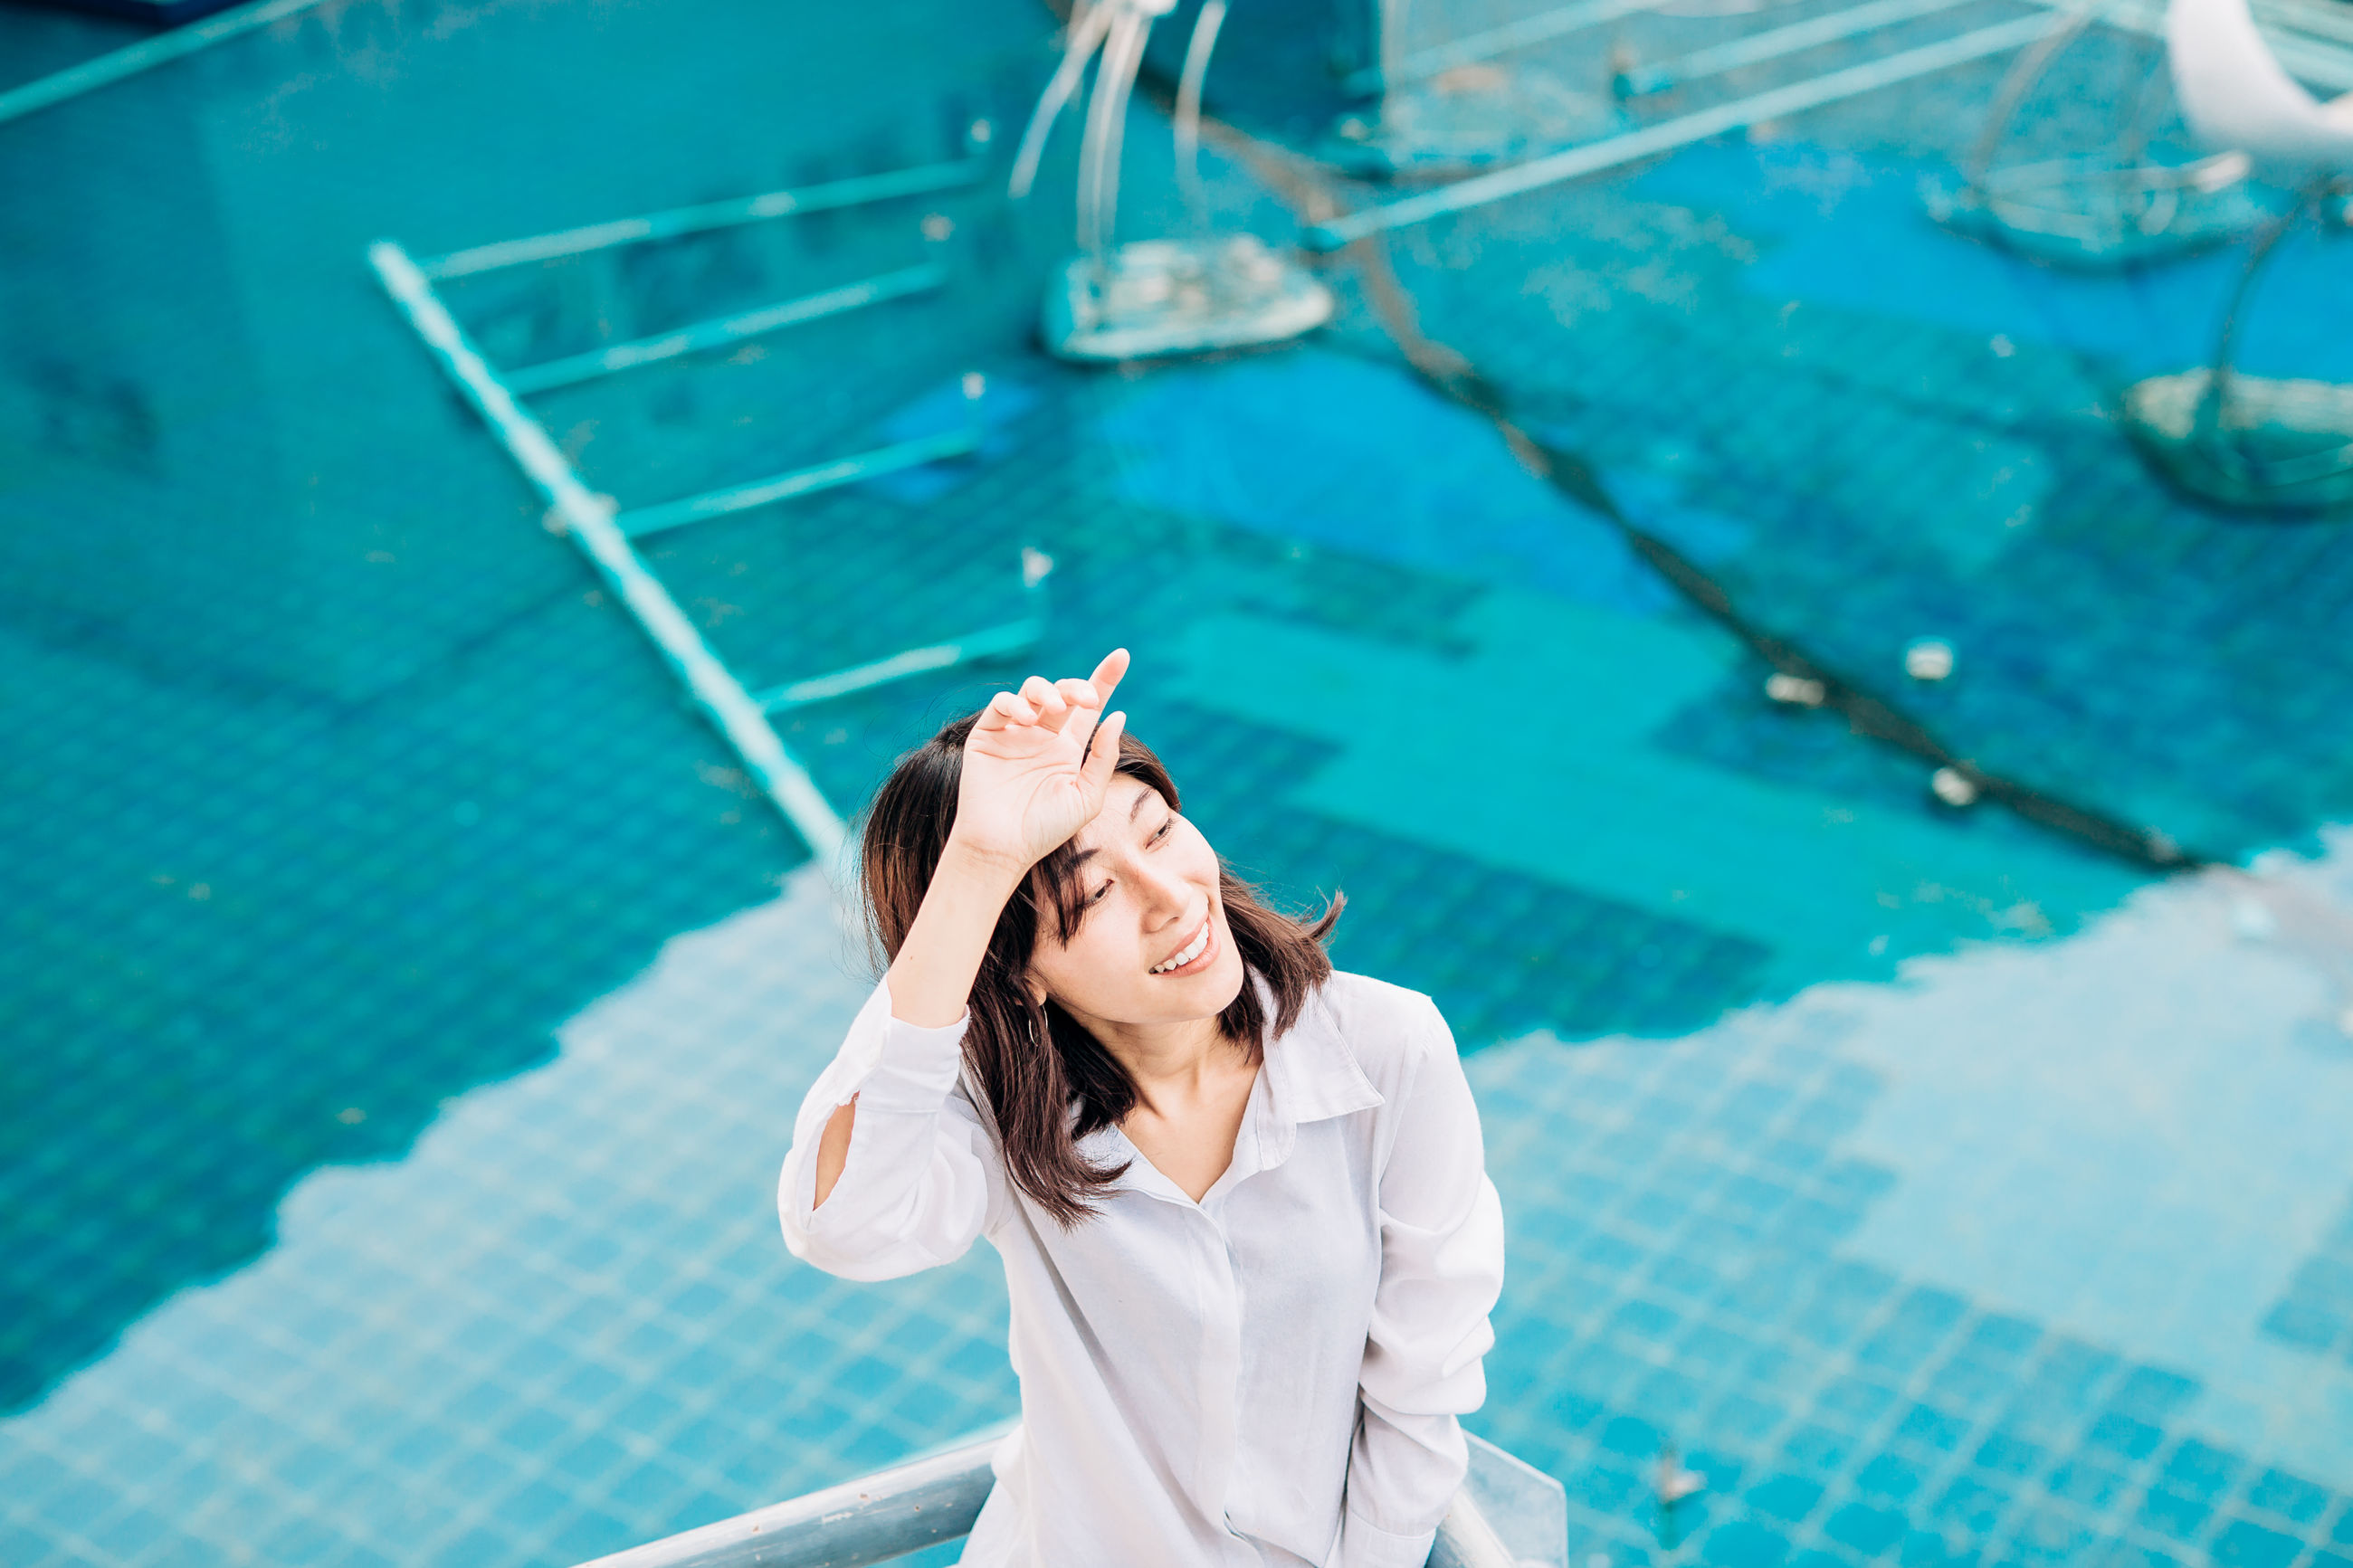 High angle view of woman sitting at swimming pool